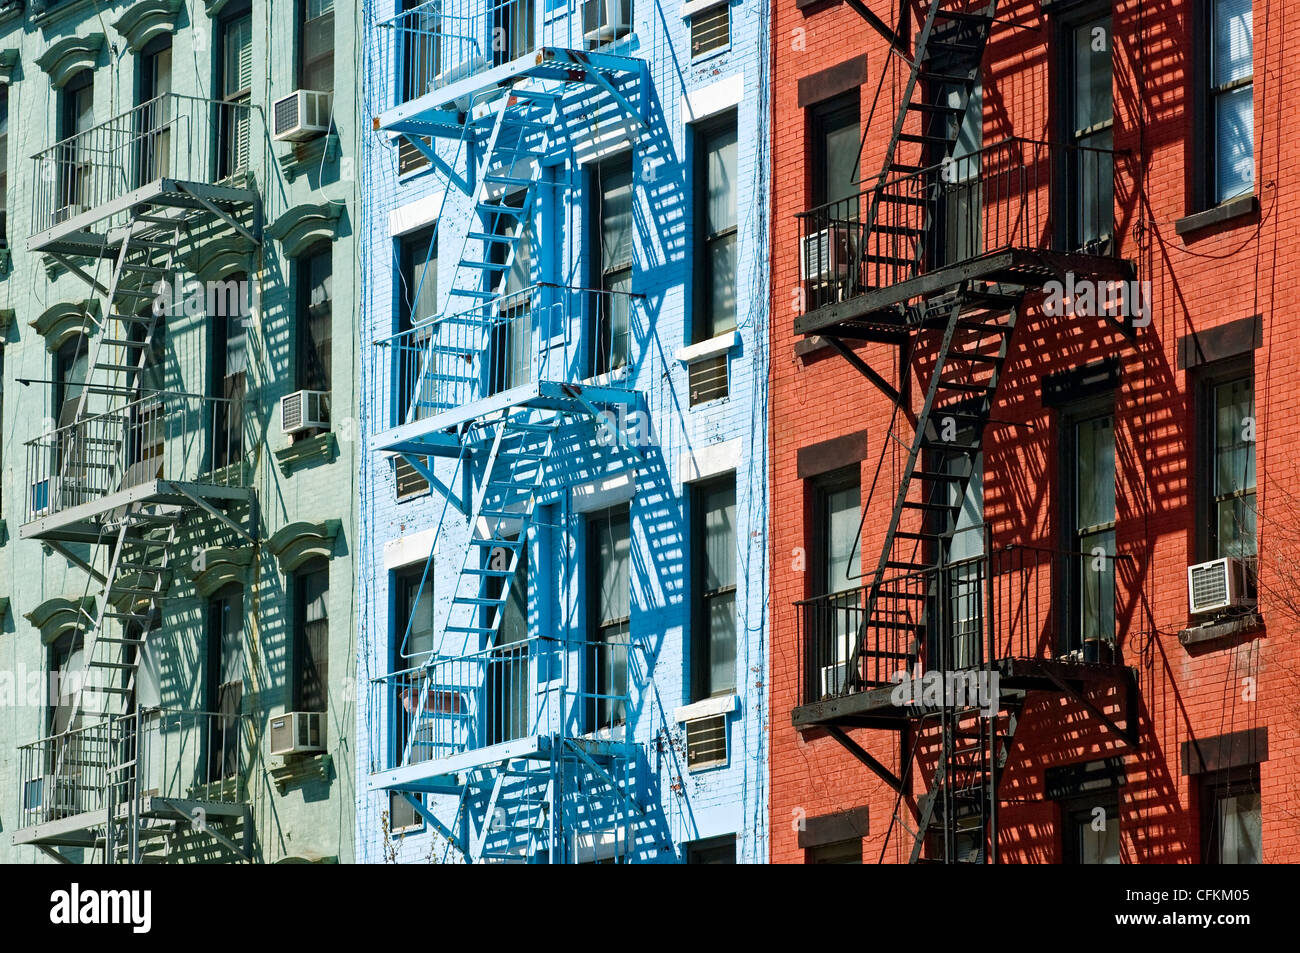 brick apartment buildings stock photos & brick apartment buildings